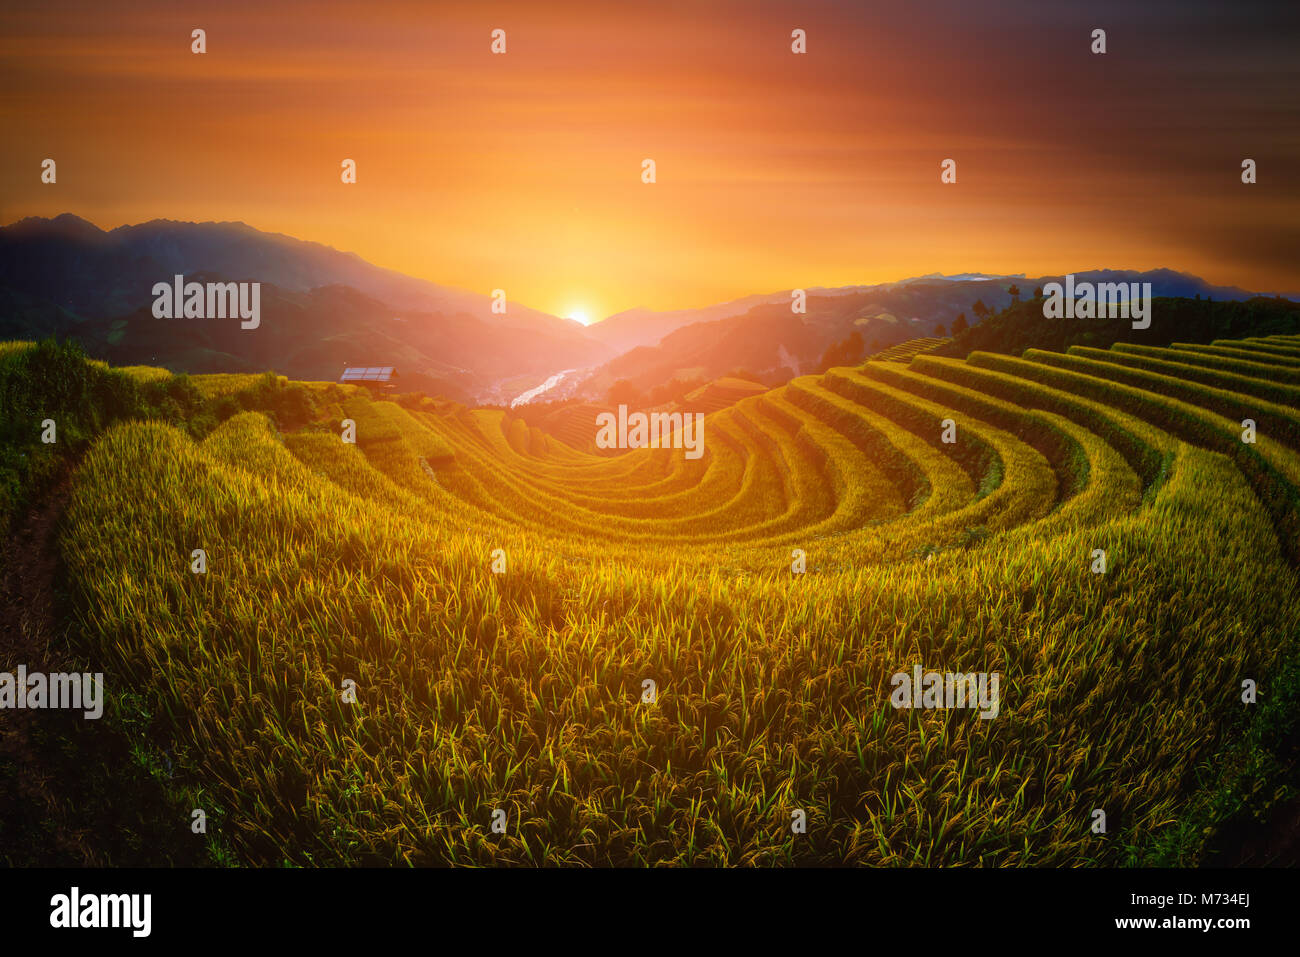 Rice fields on terraced with wooden pavilion at sunset in Mu Cang Chai, YenBai, Vietnam. - Stock Image